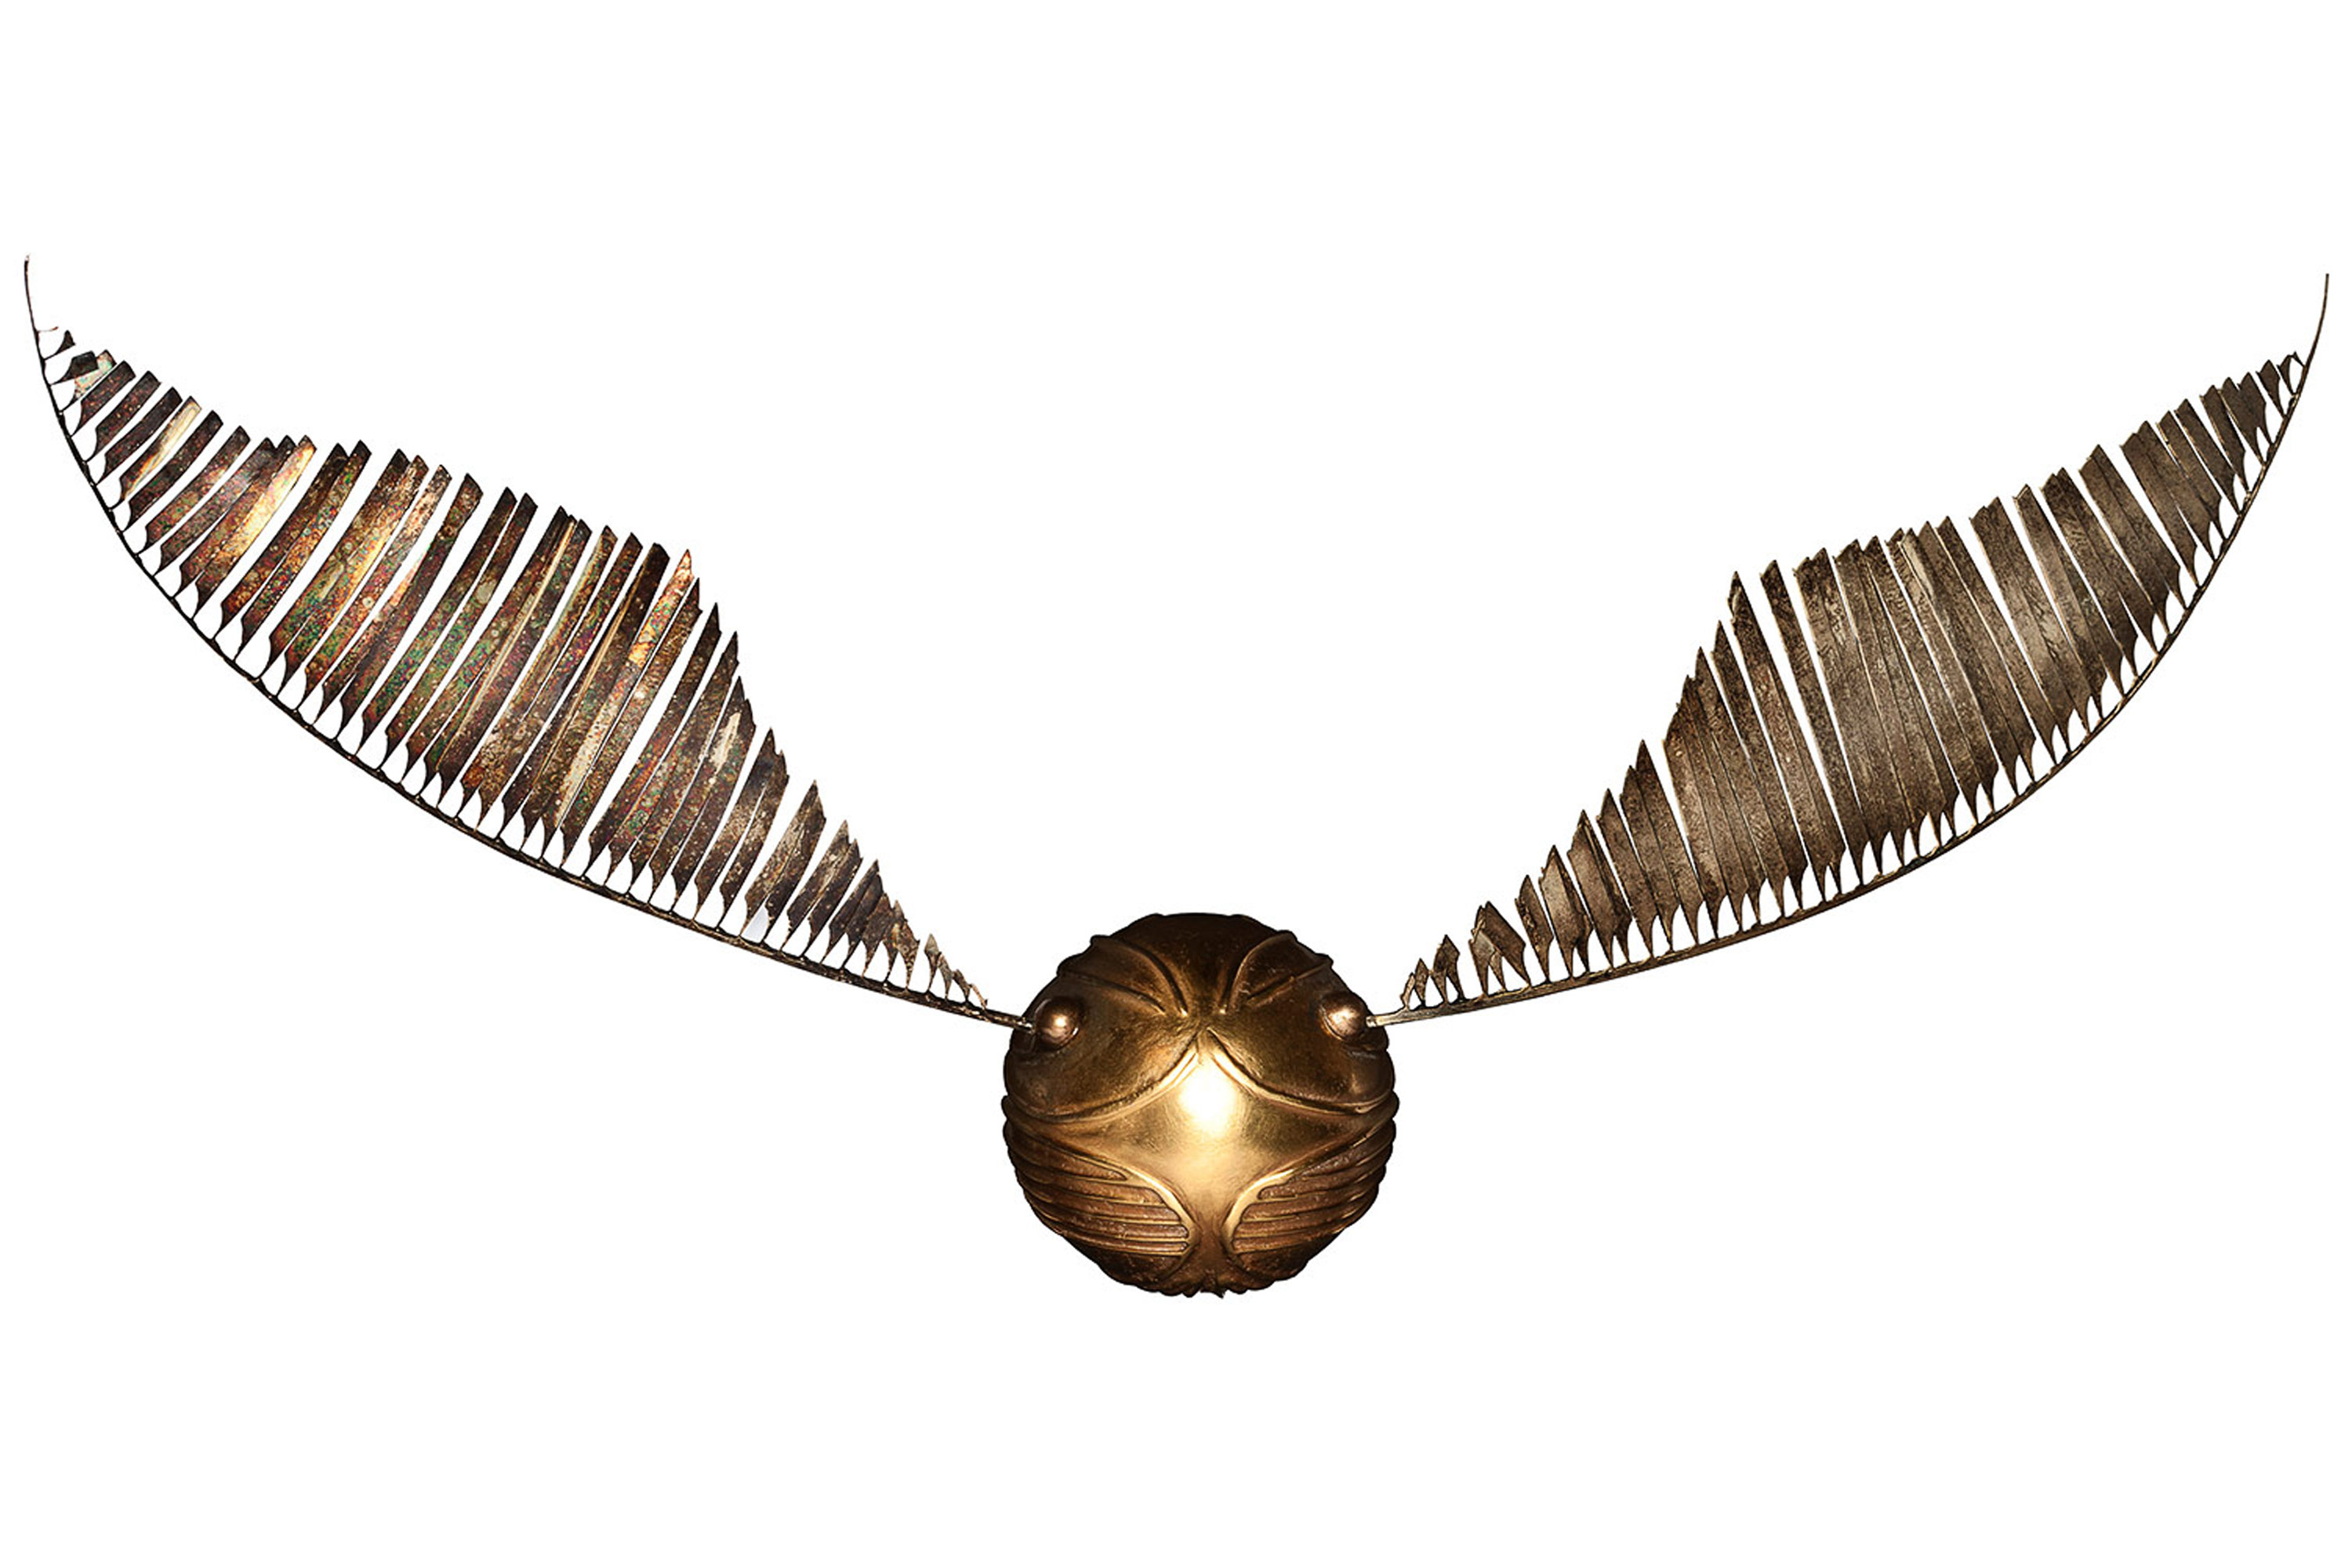 Snitch Png - Download Harry Potter Snitch Hd Photo Clipart PNG Free ...